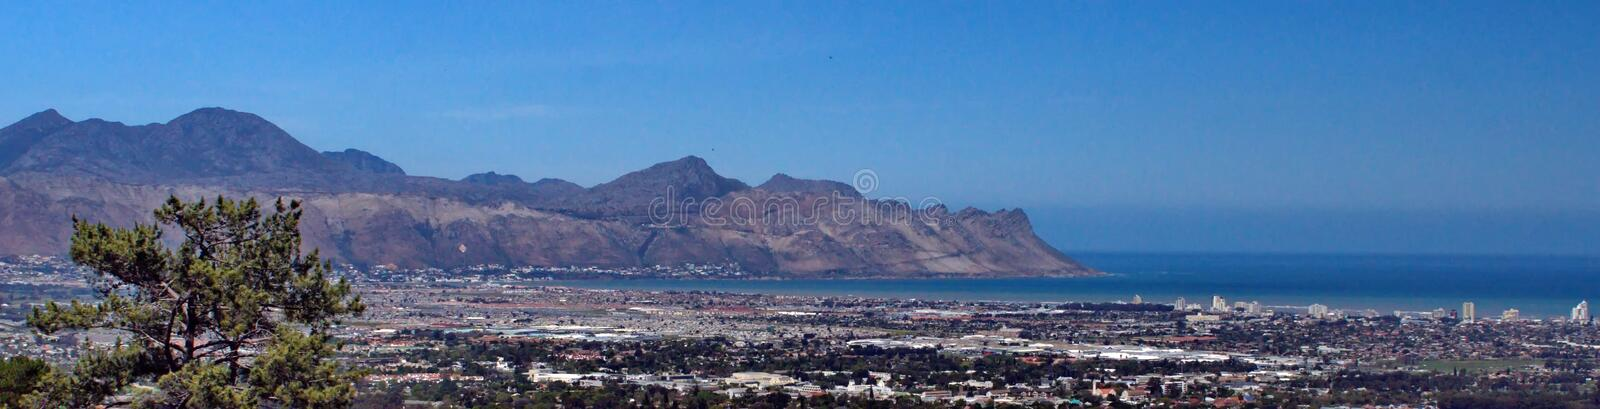 Panoramic of Strand, South Africa stock photos